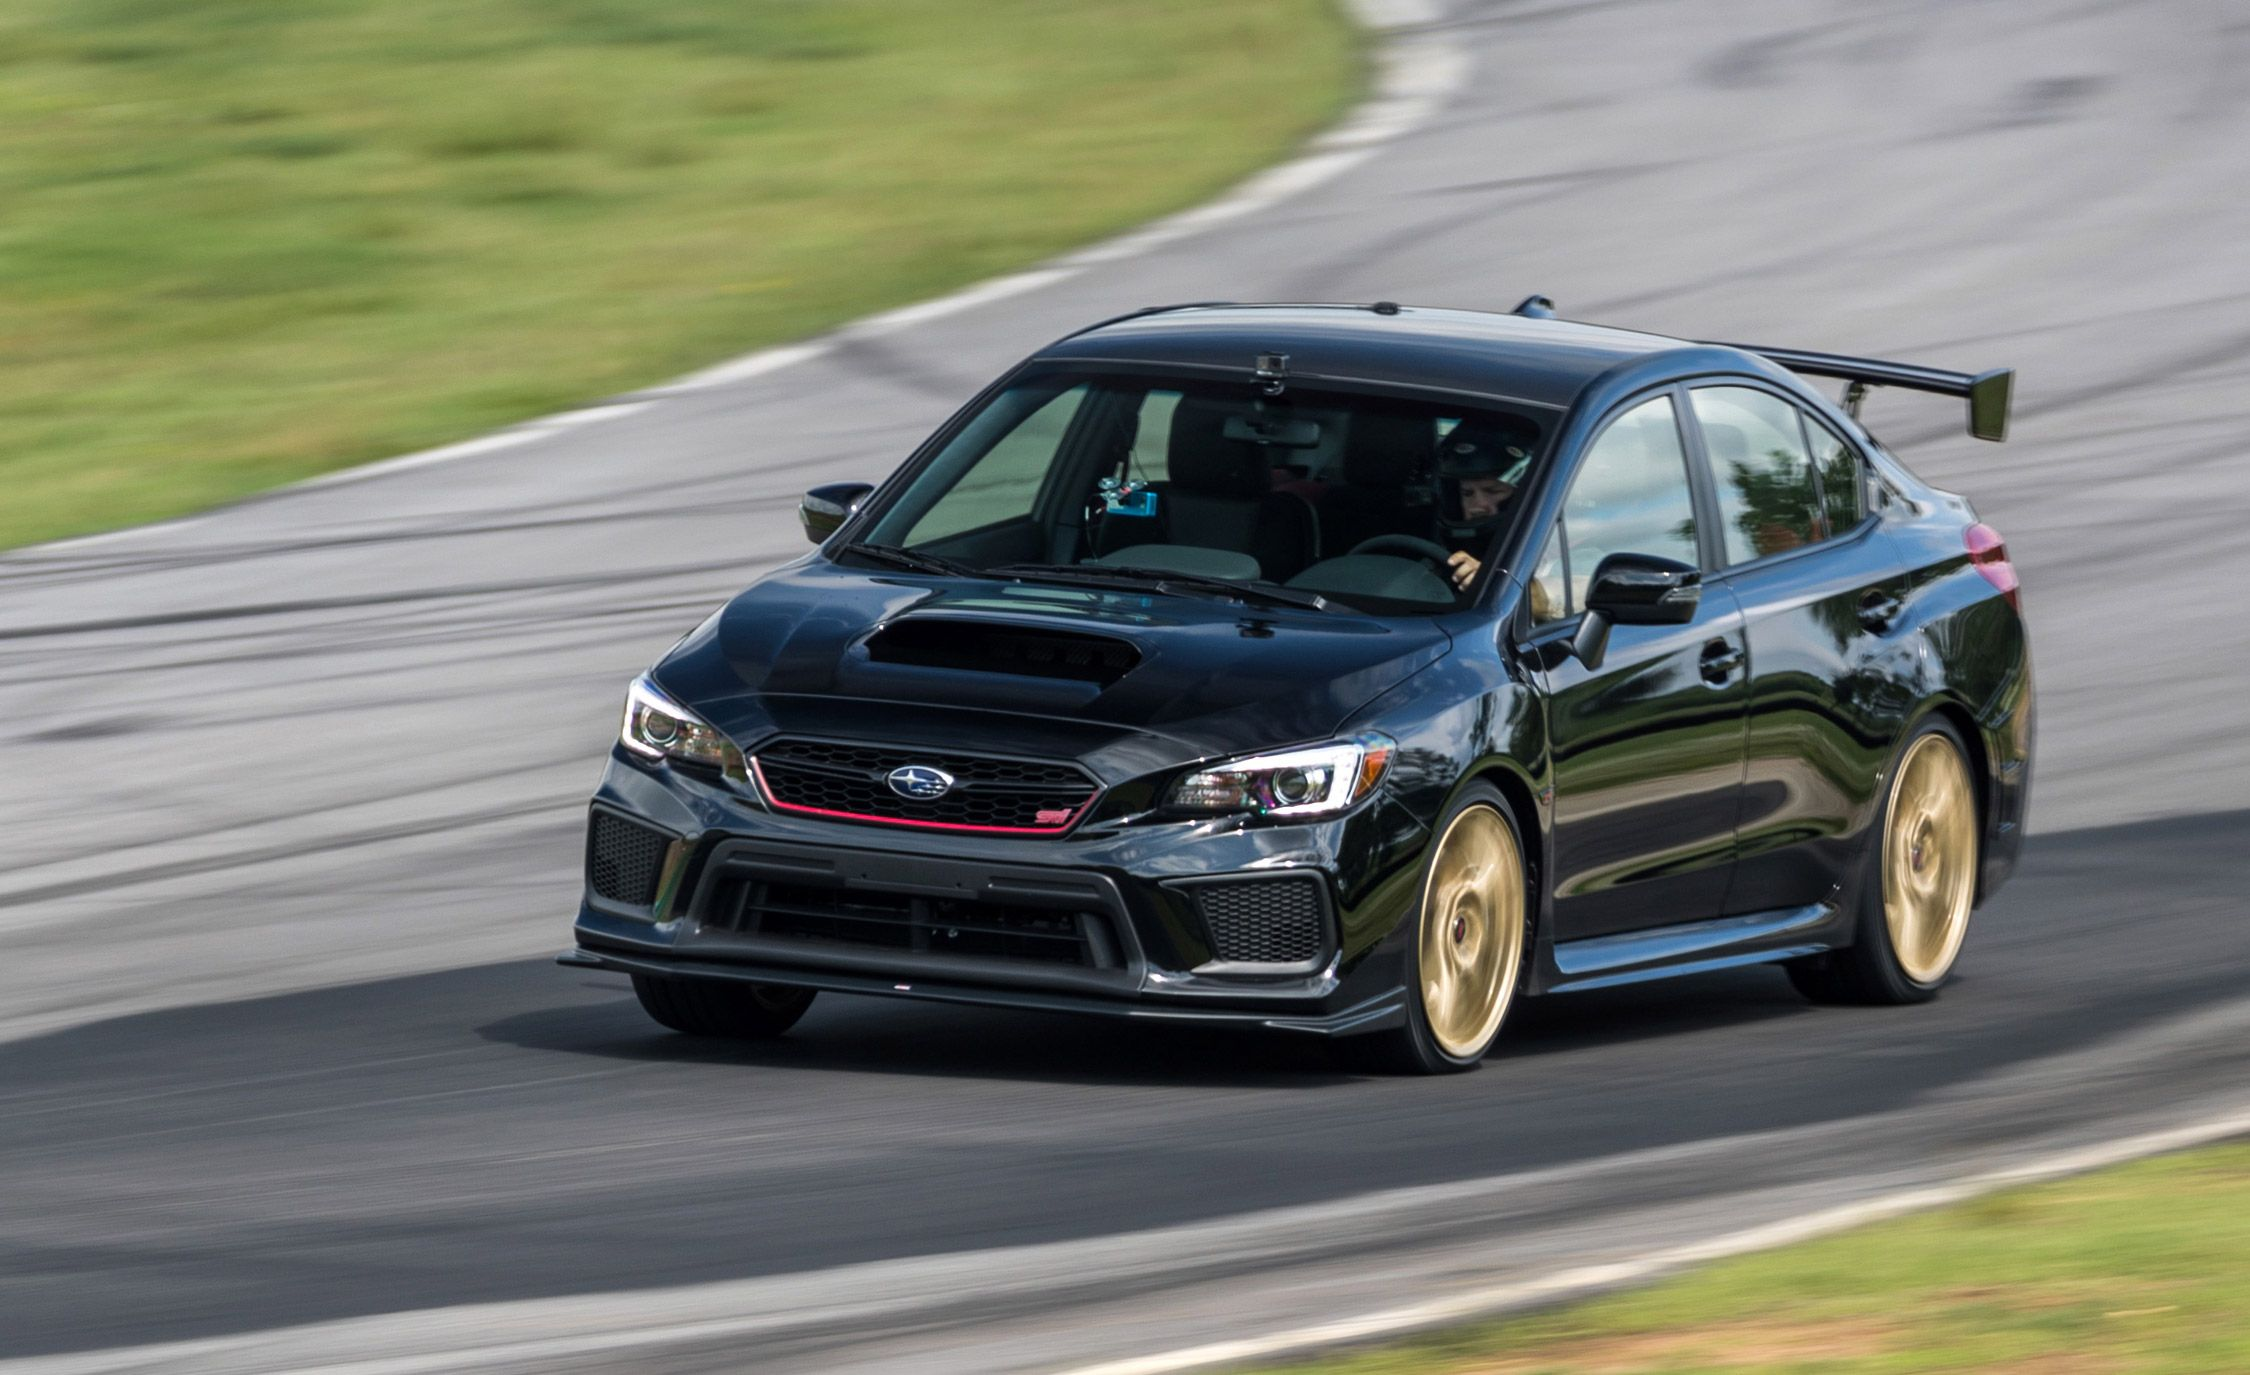 2019 Subaru Wrx Sti Reviews Subaru Wrx Sti Price Photos And